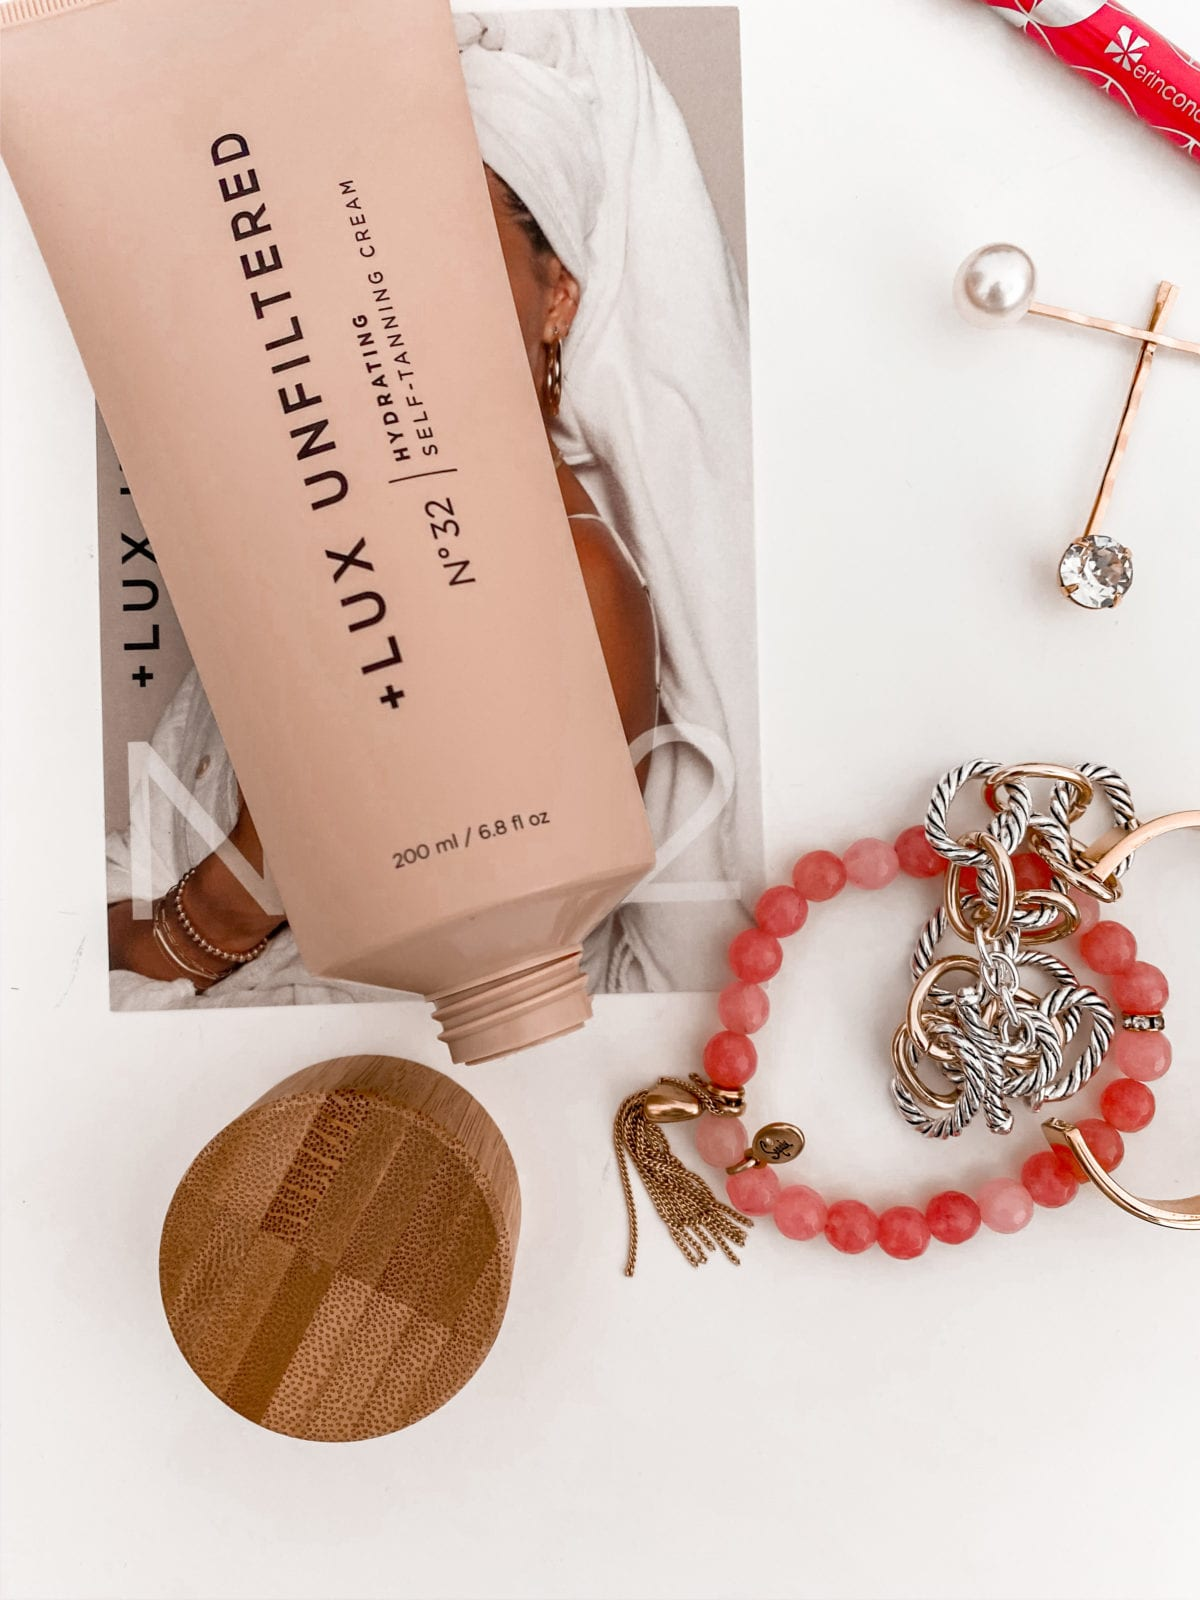 This is a flat lay photo of the Lux Unfiltered Gradual Tan from Sivan Ayla.